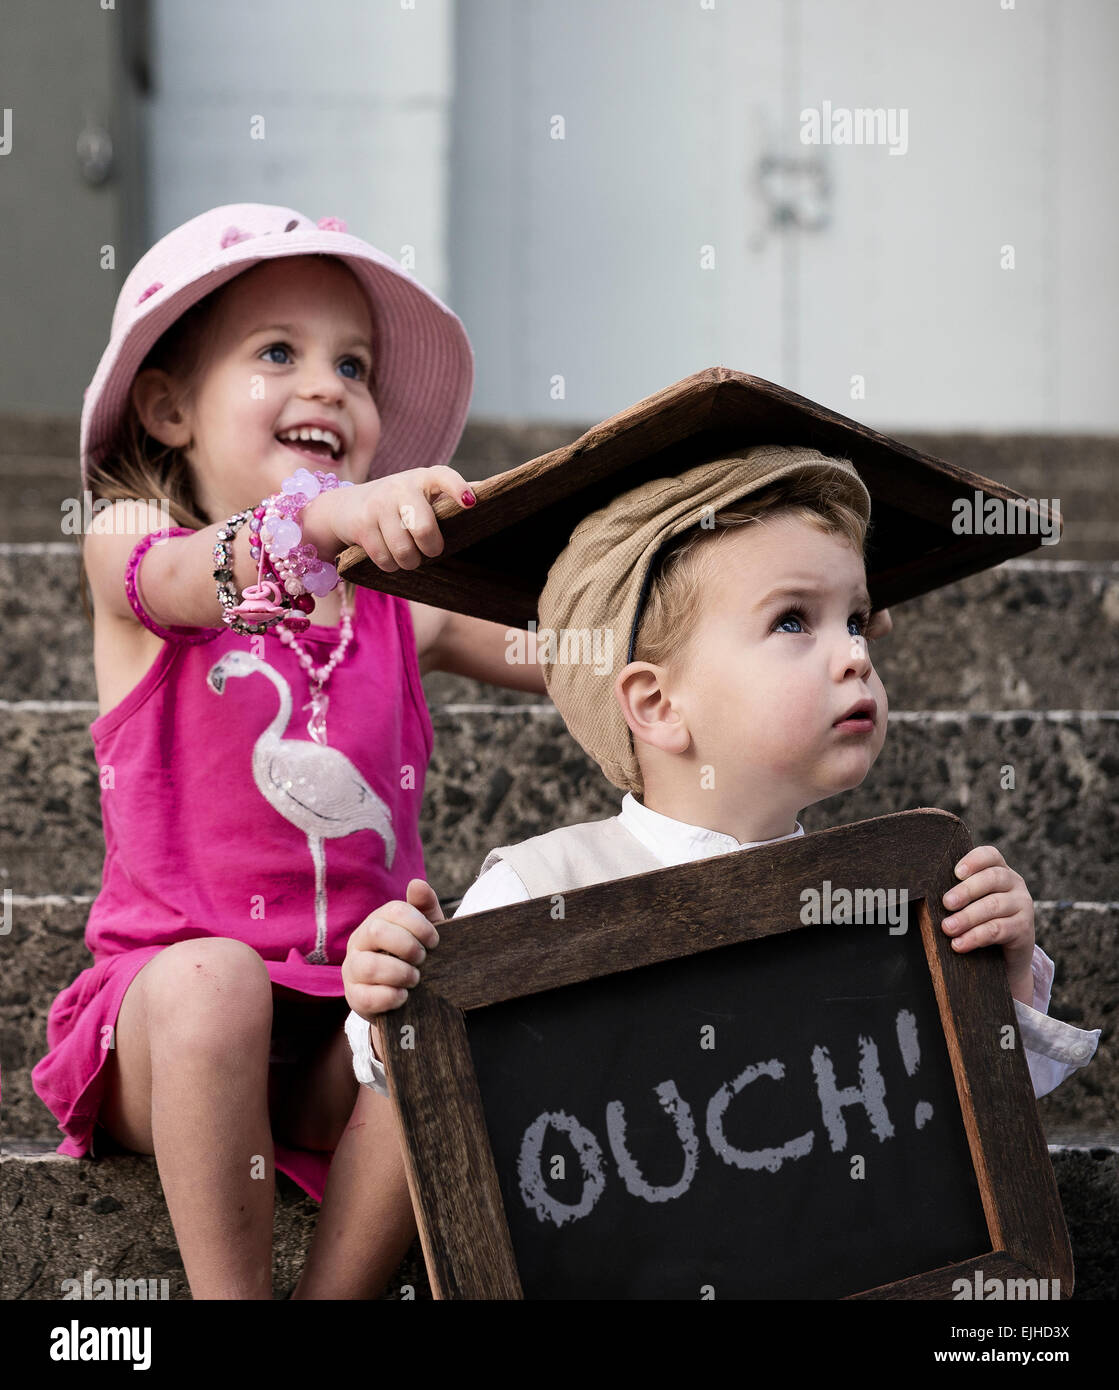 Naughty sister hits her brother over the head with chalkboard - Stock Image